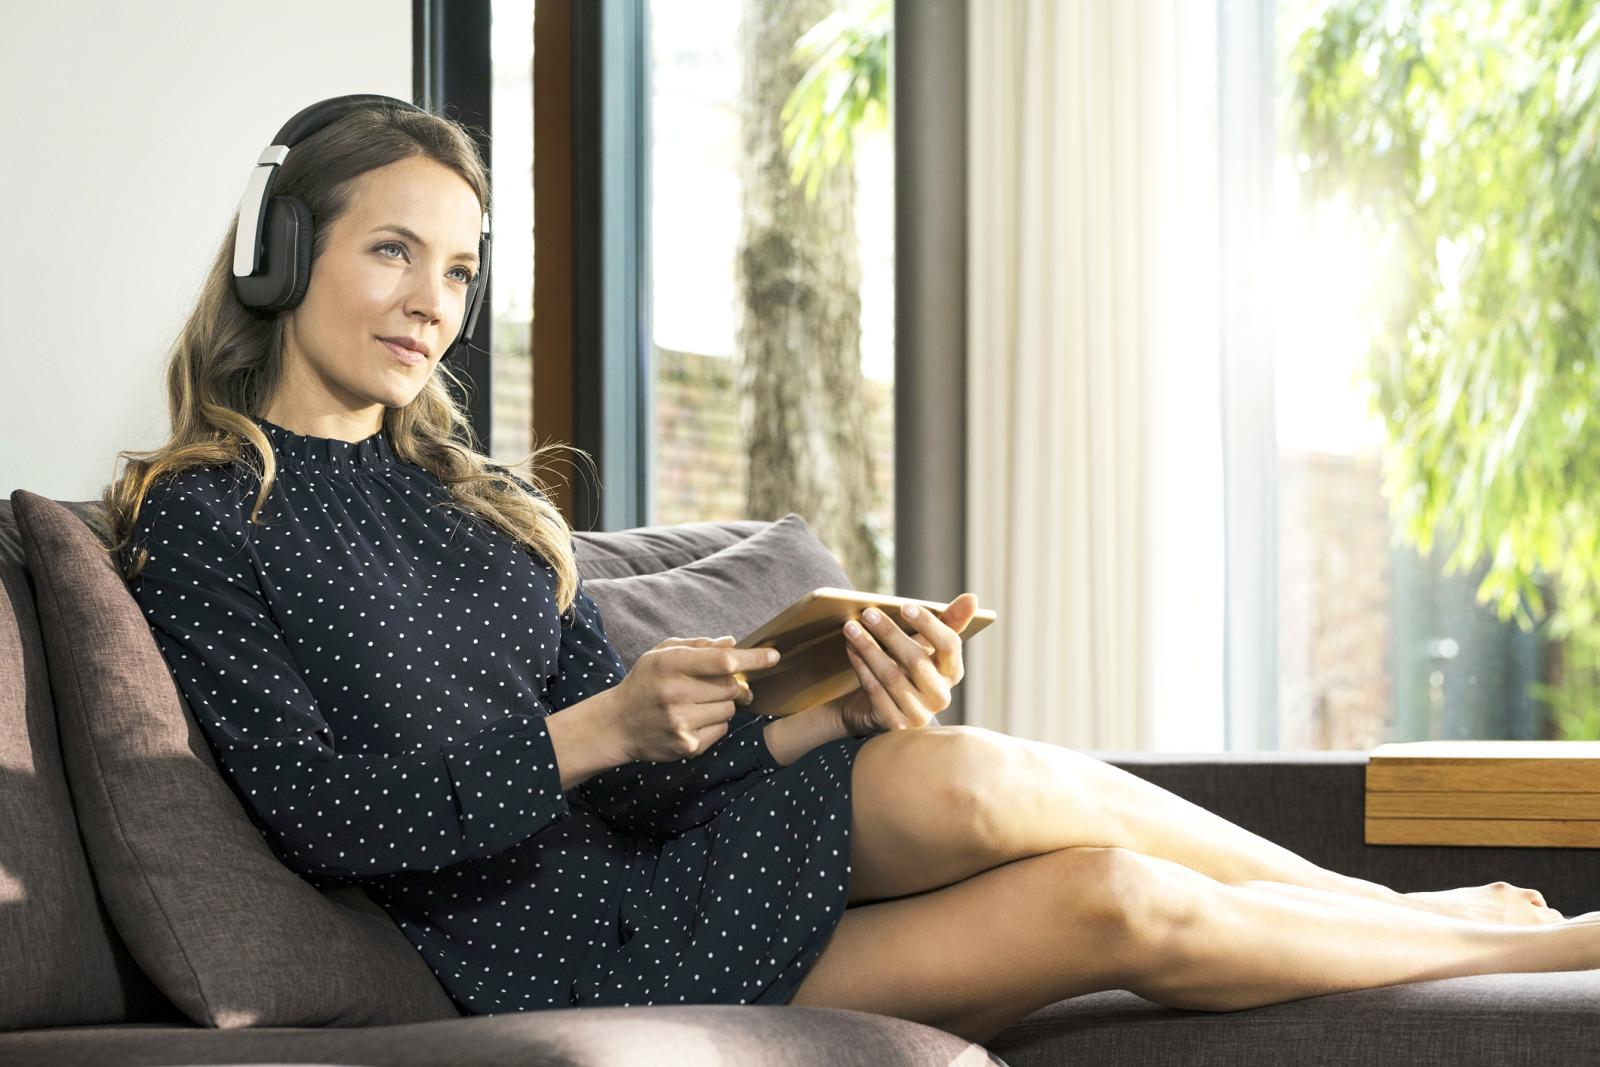 Woman with tablet and headphones relaxing on couch at home